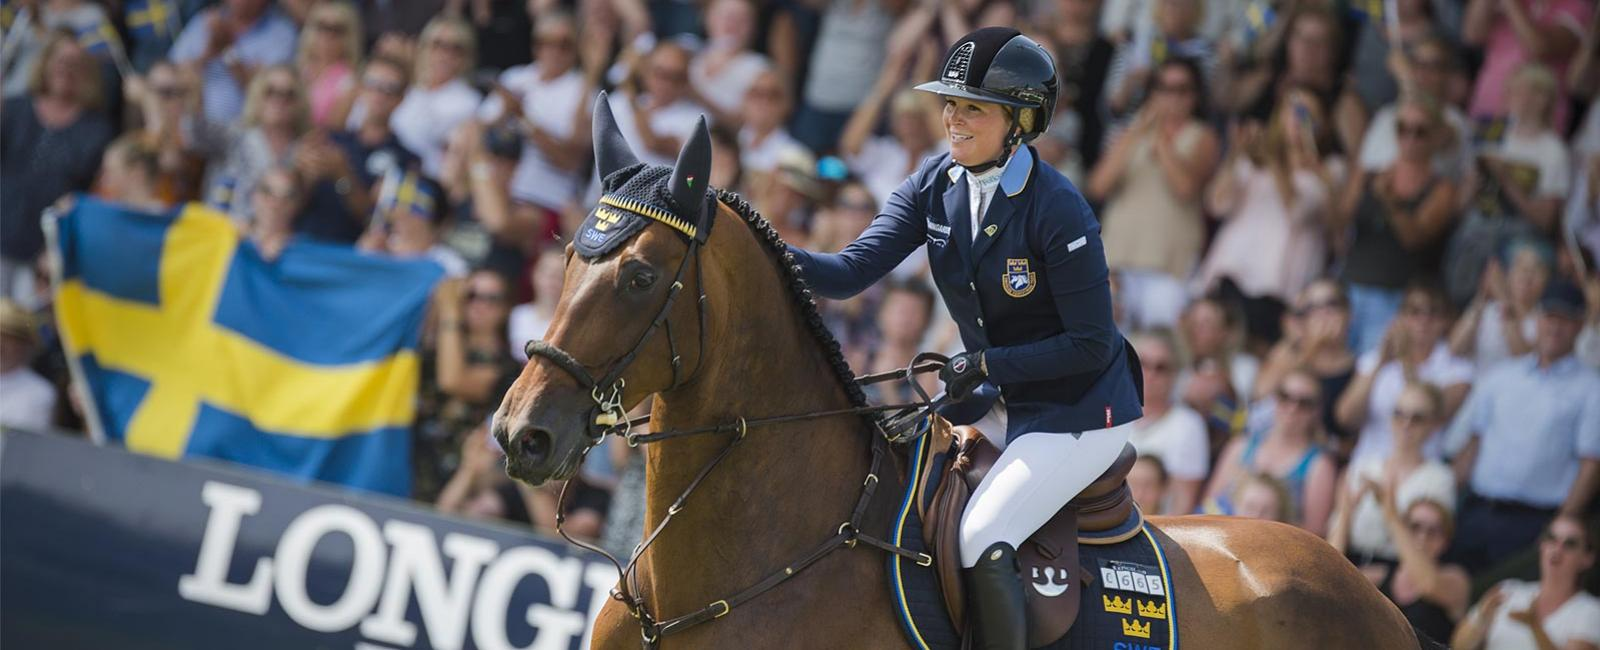 Longines FEI Jumping Nations Cup of Sweden - Falsterbo International Horse Show; Jumping; 2019